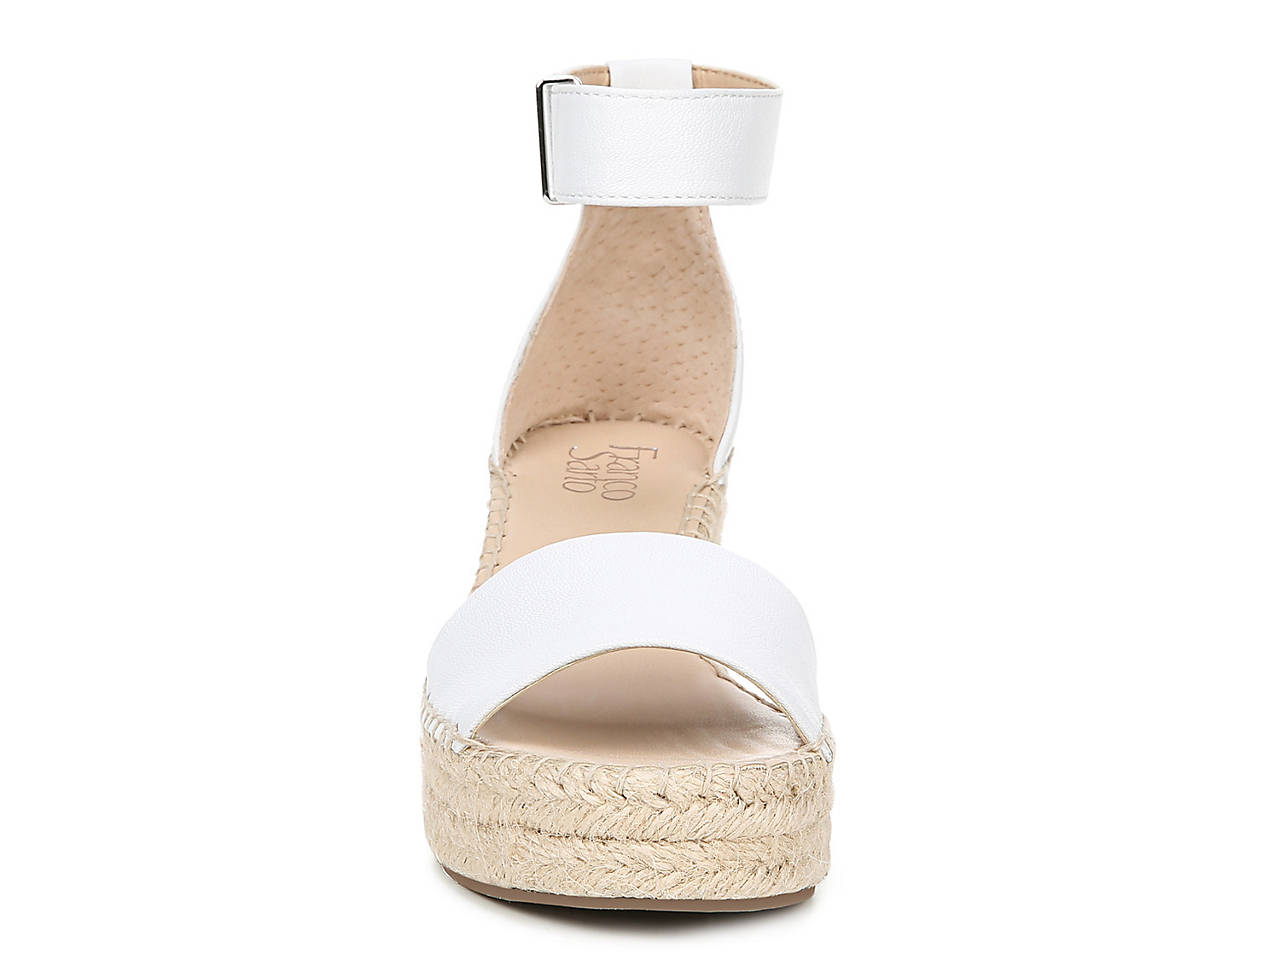 93318eef7b0 Franco Sarto Clemens Espadrille Wedge Sandal Women s Shoes